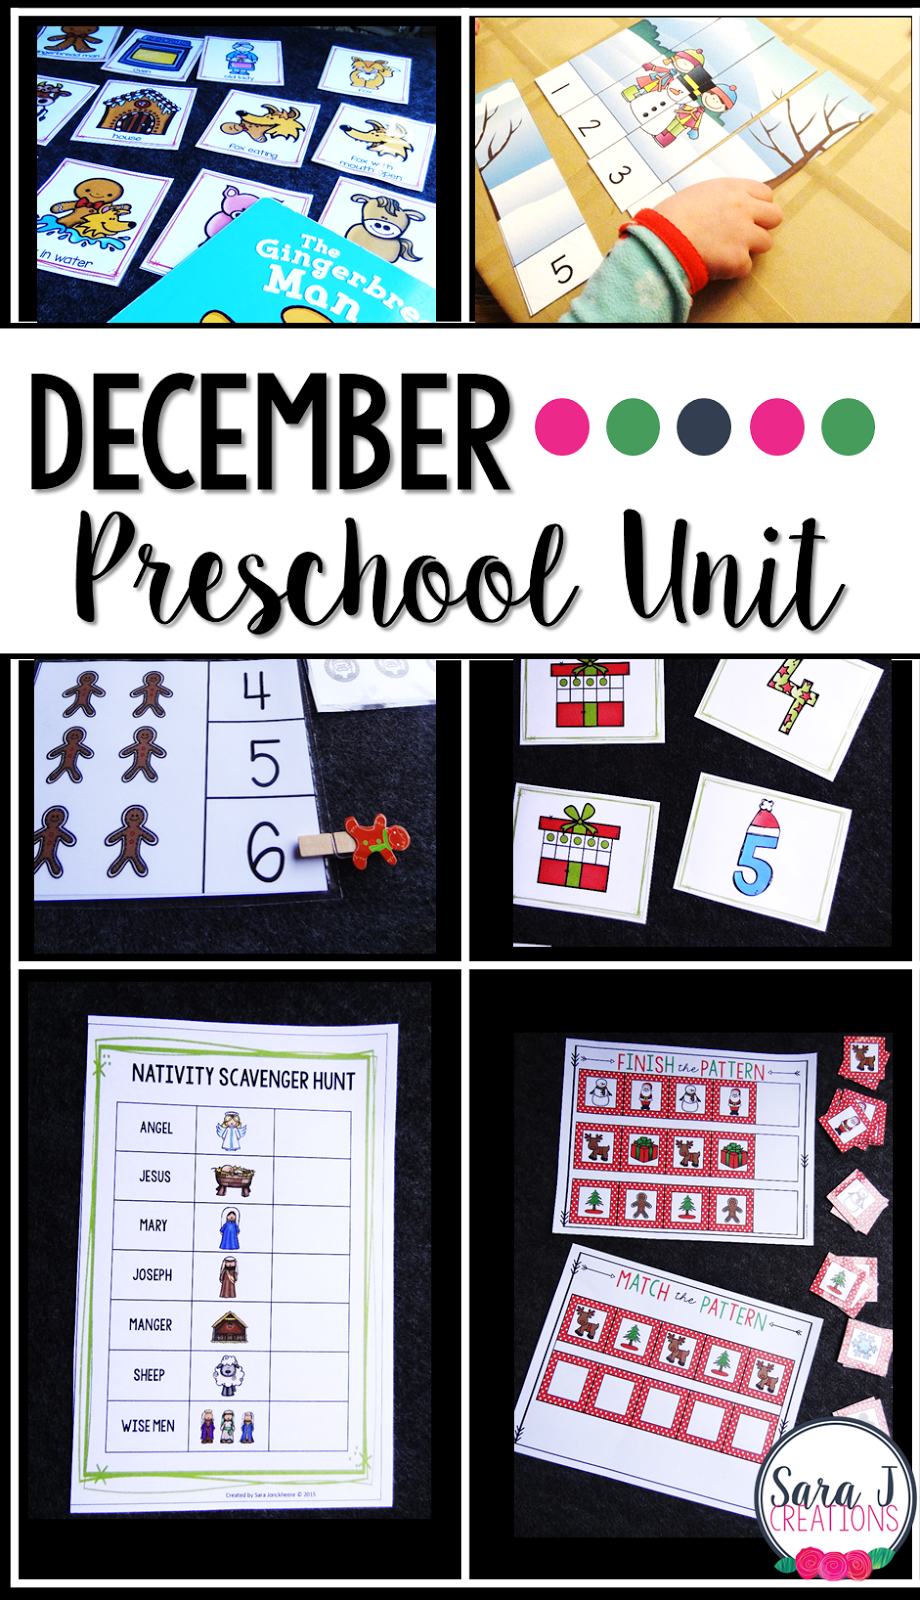 Preschool and kindergarten activities with a Christmas theme.Practice patterning, letter and number identification, counting, sequencing and more!